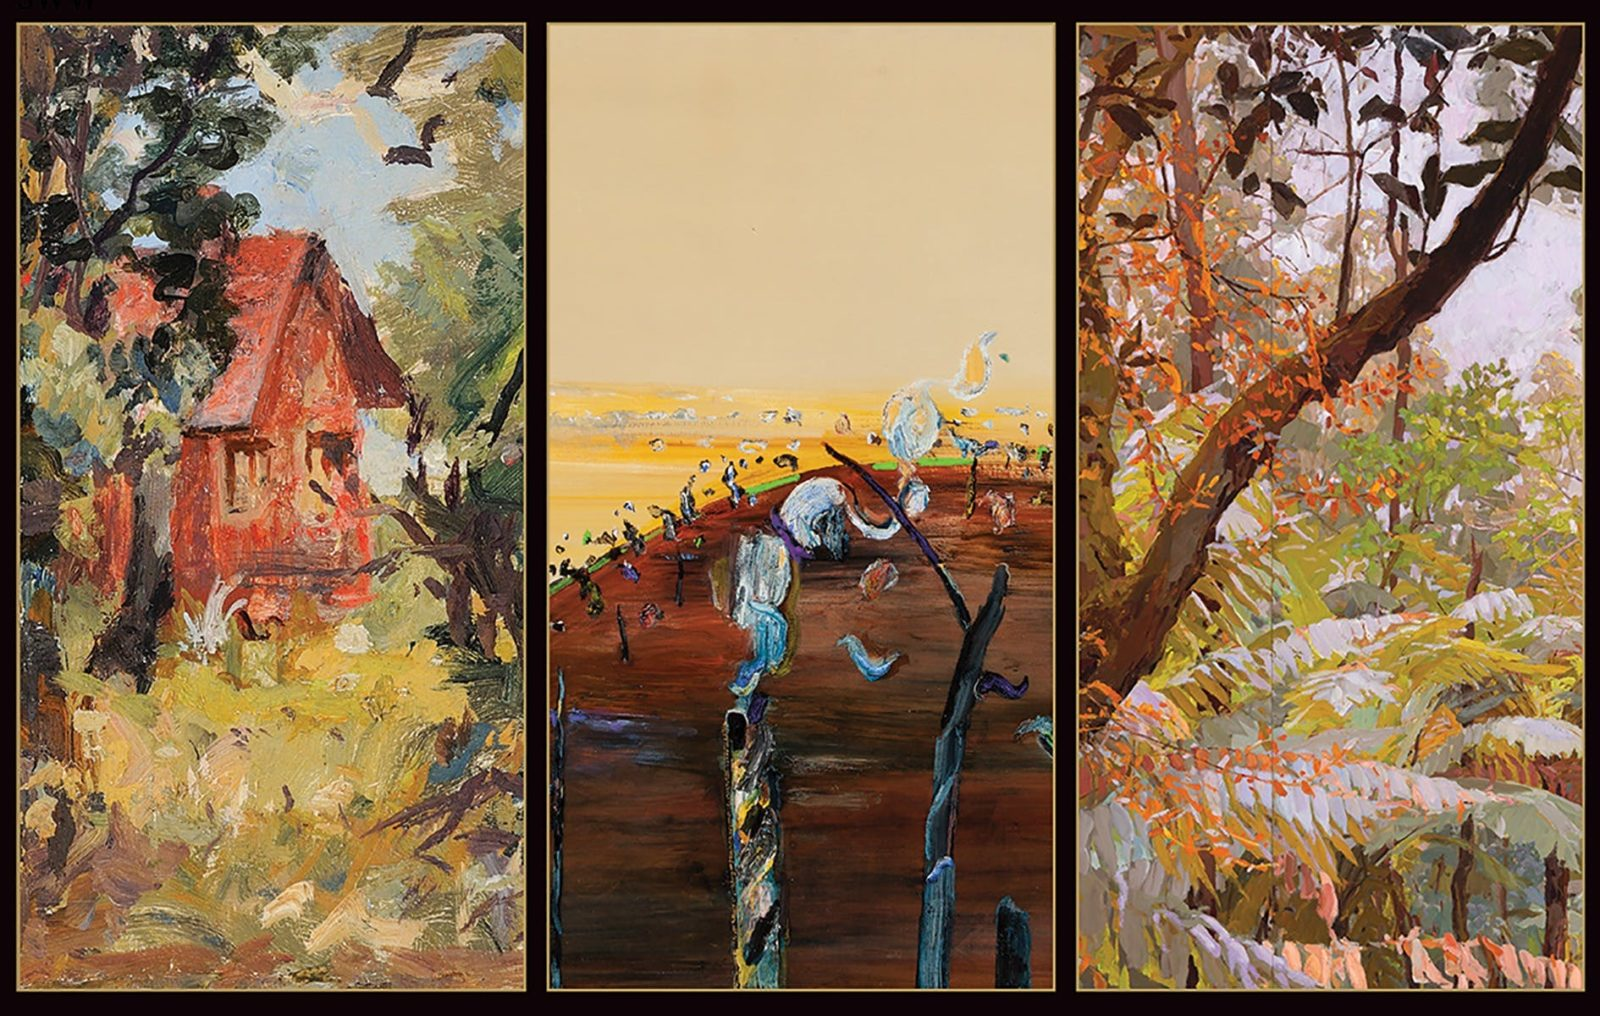 3 Perspectives exhibition